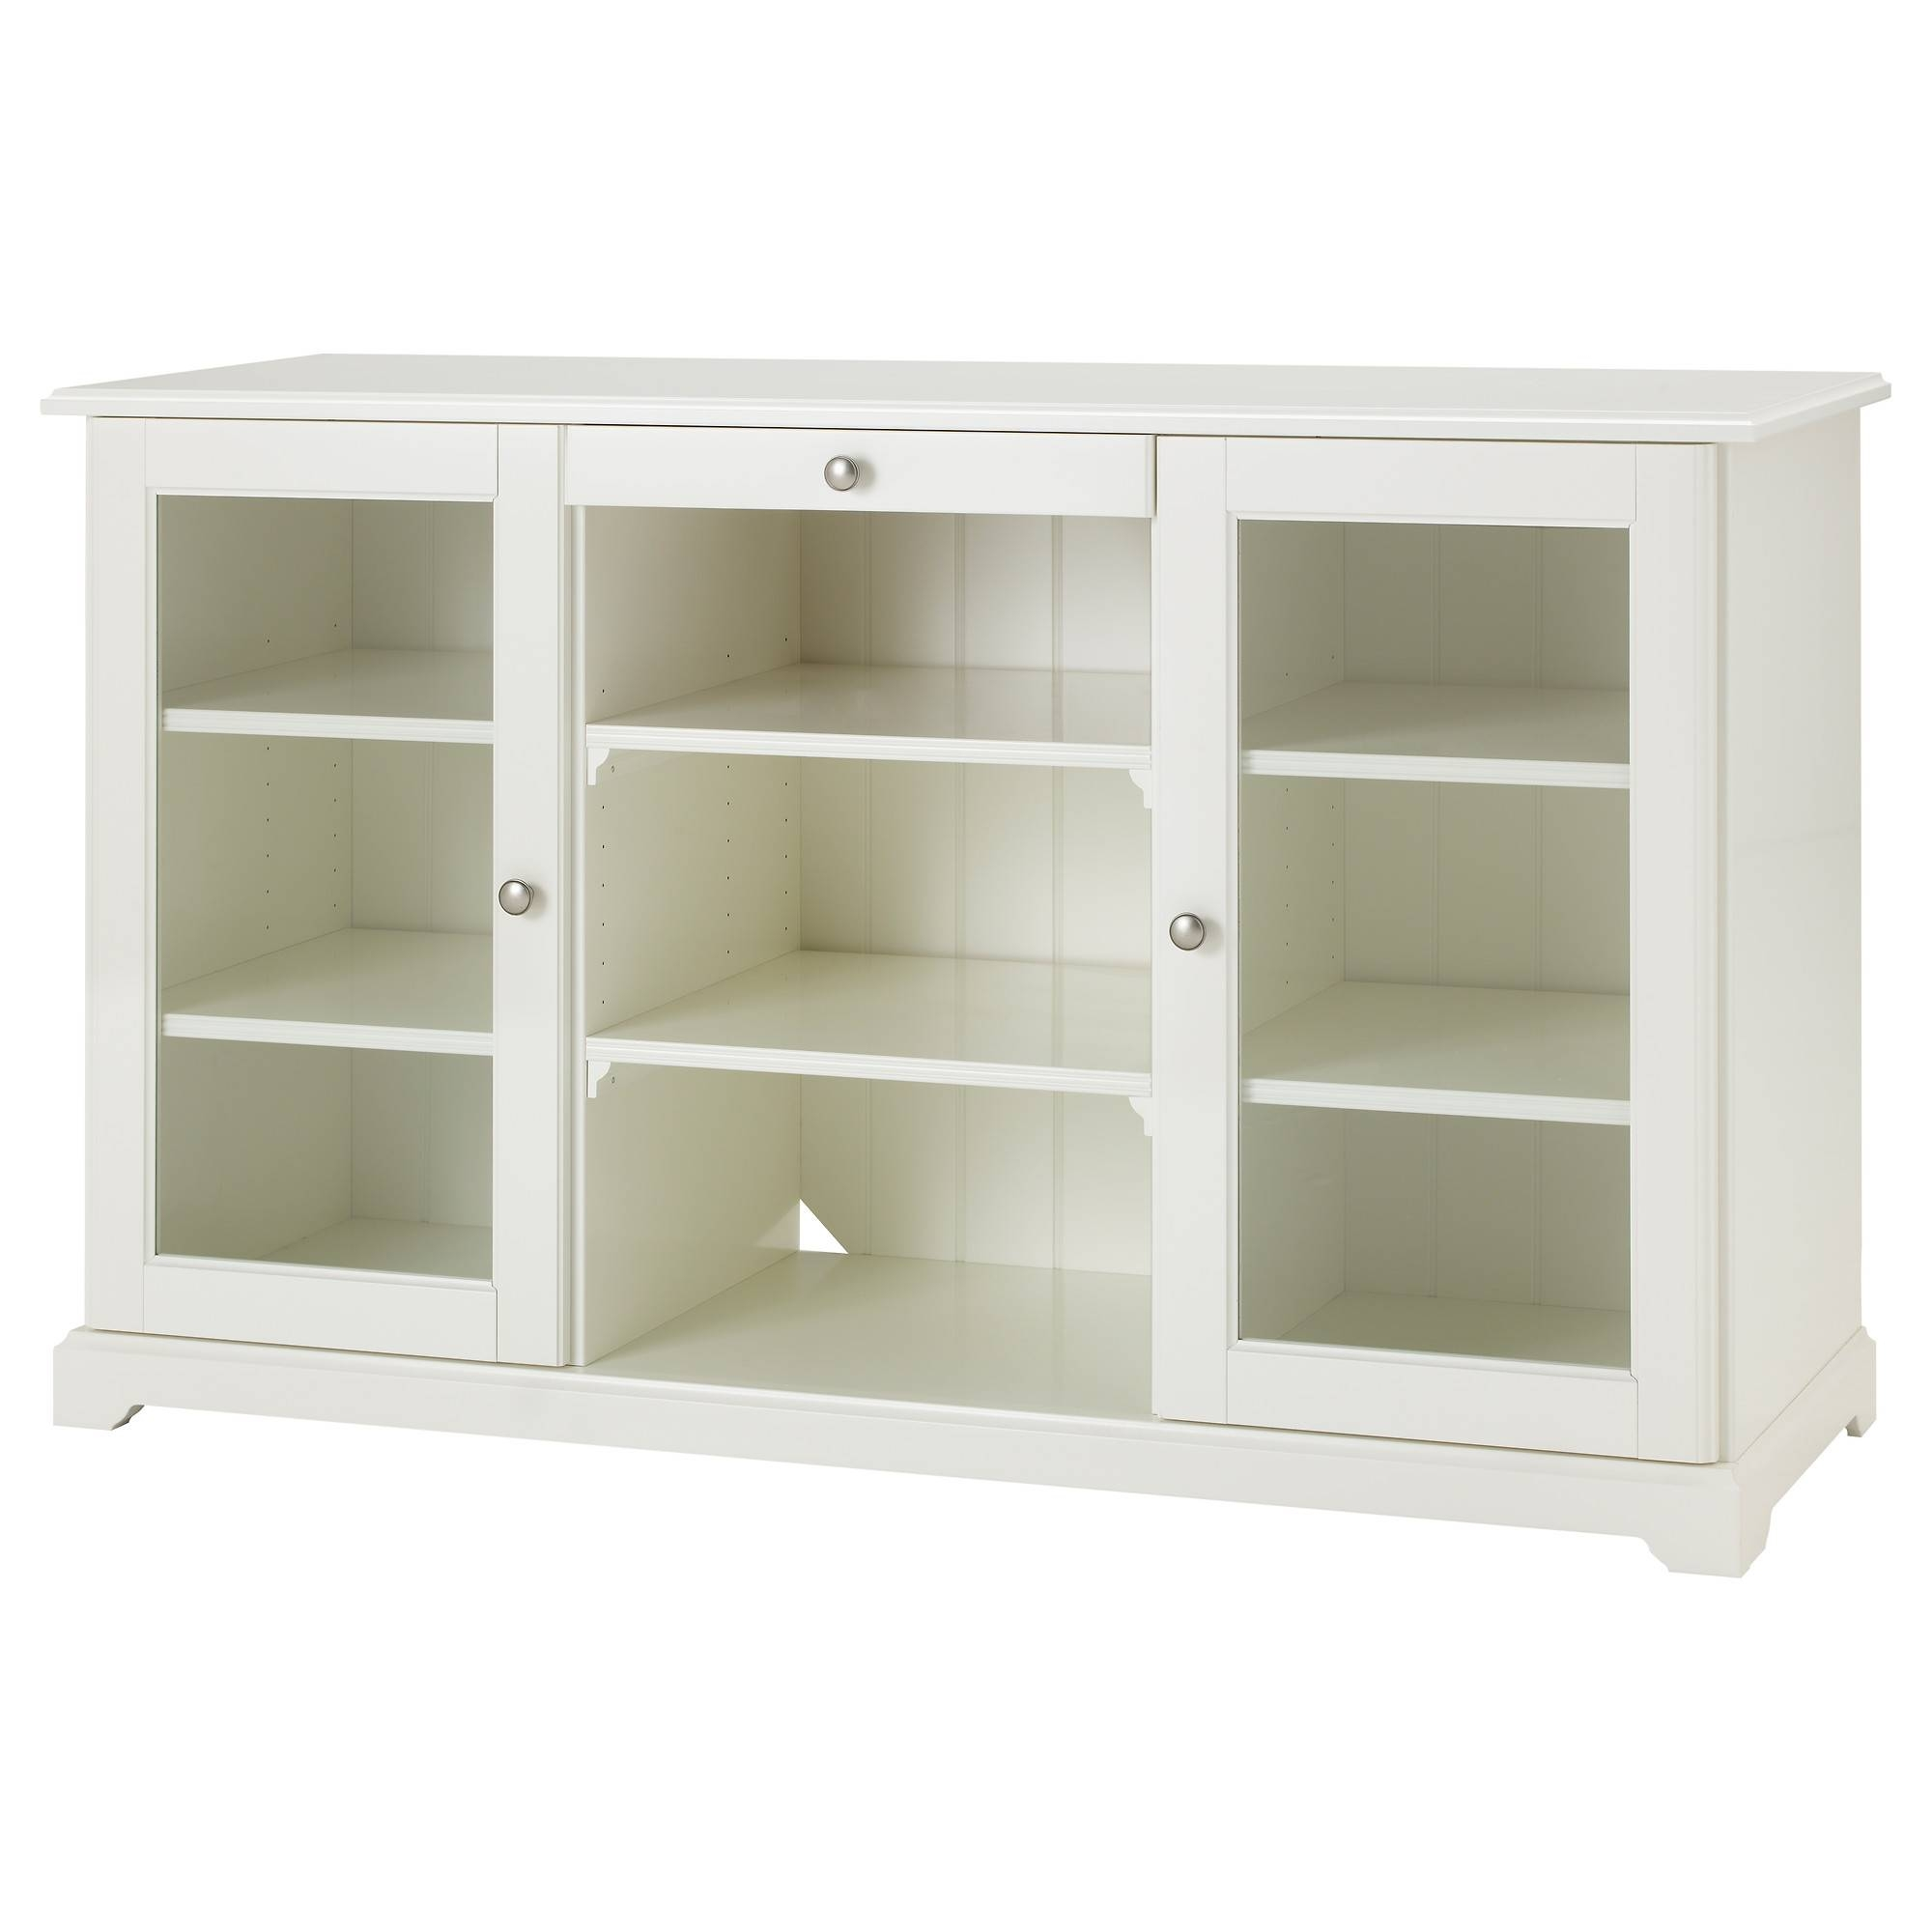 Liatorp Sideboard - White - Ikea in Ikea Sideboards (Image 11 of 15)